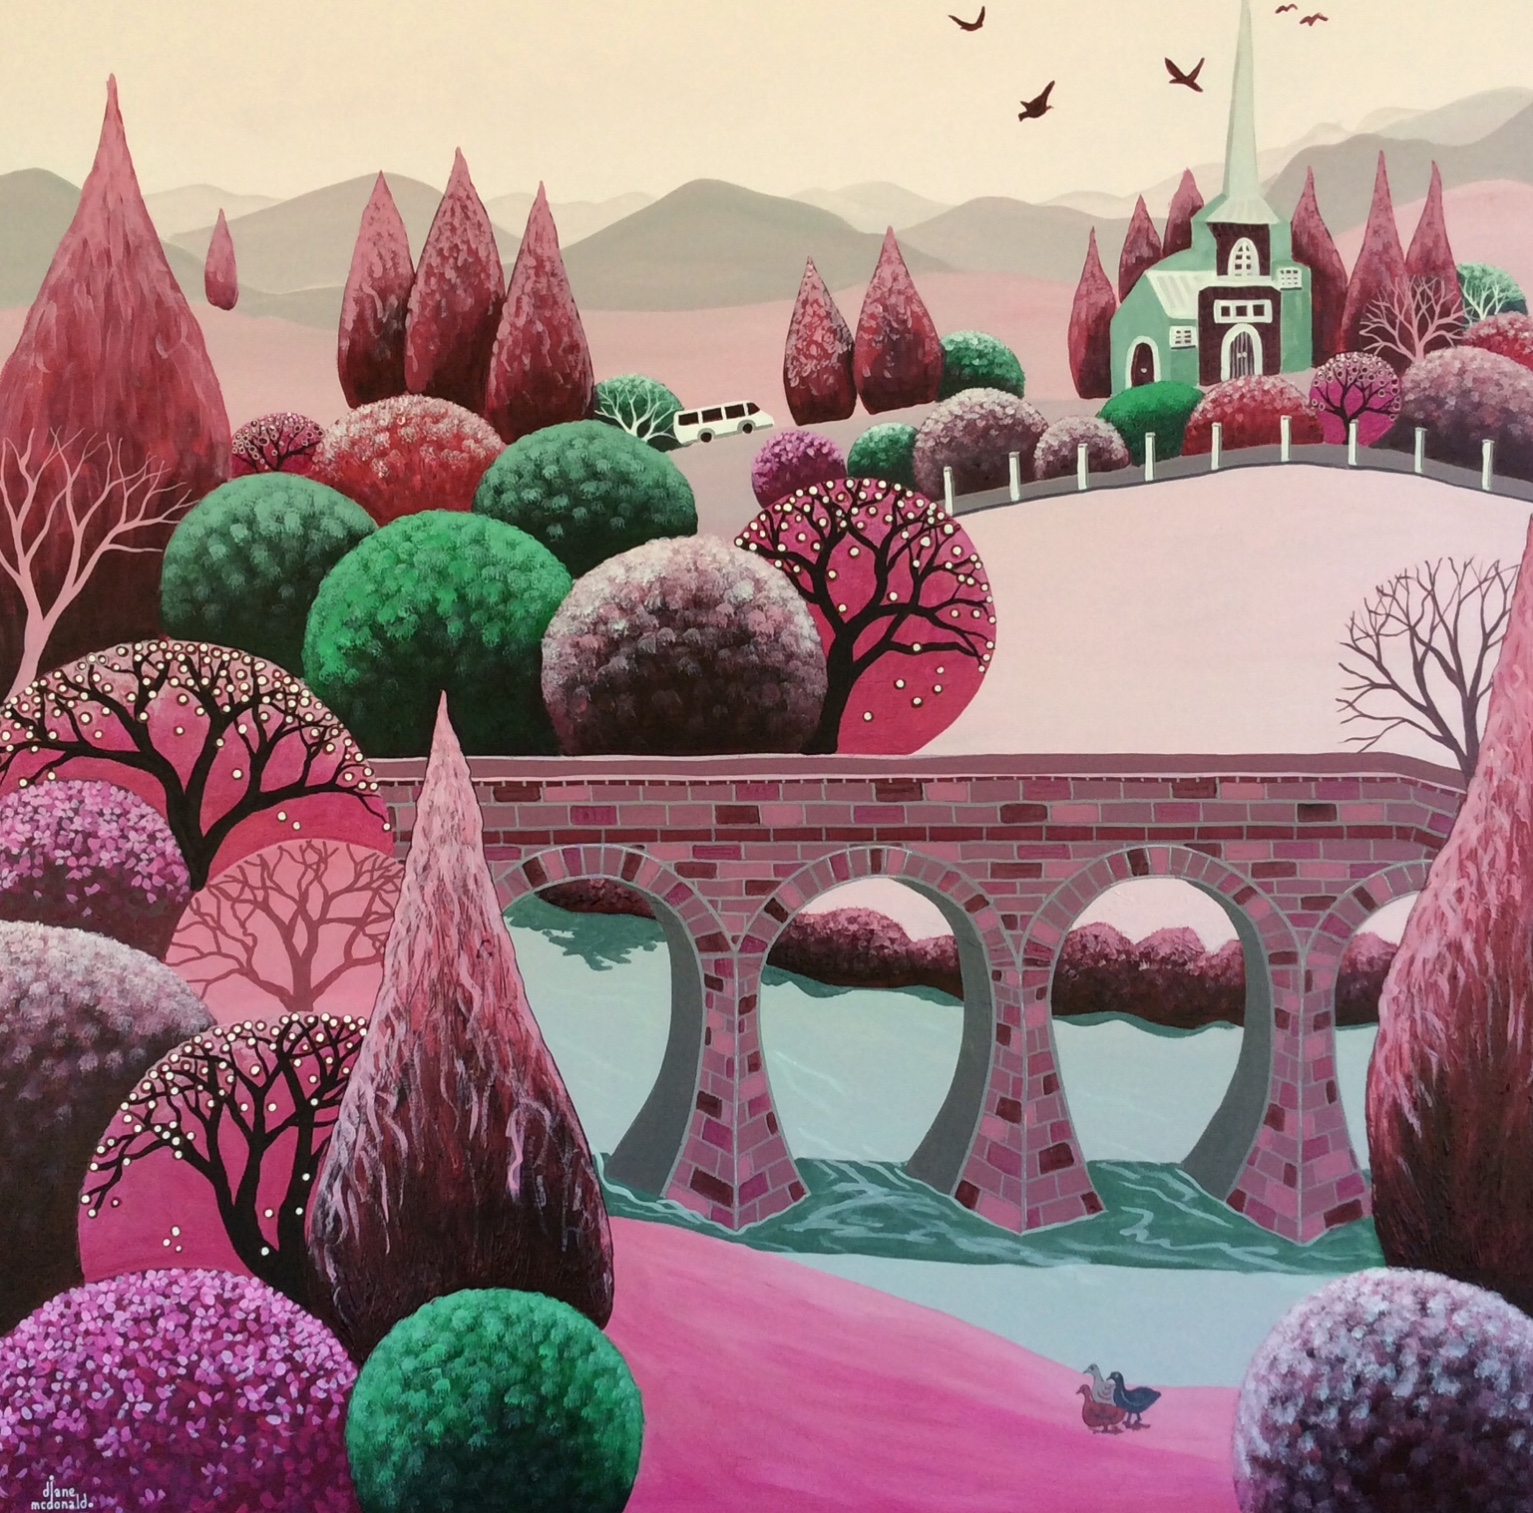 Richmond In Rose by Diane McDonald